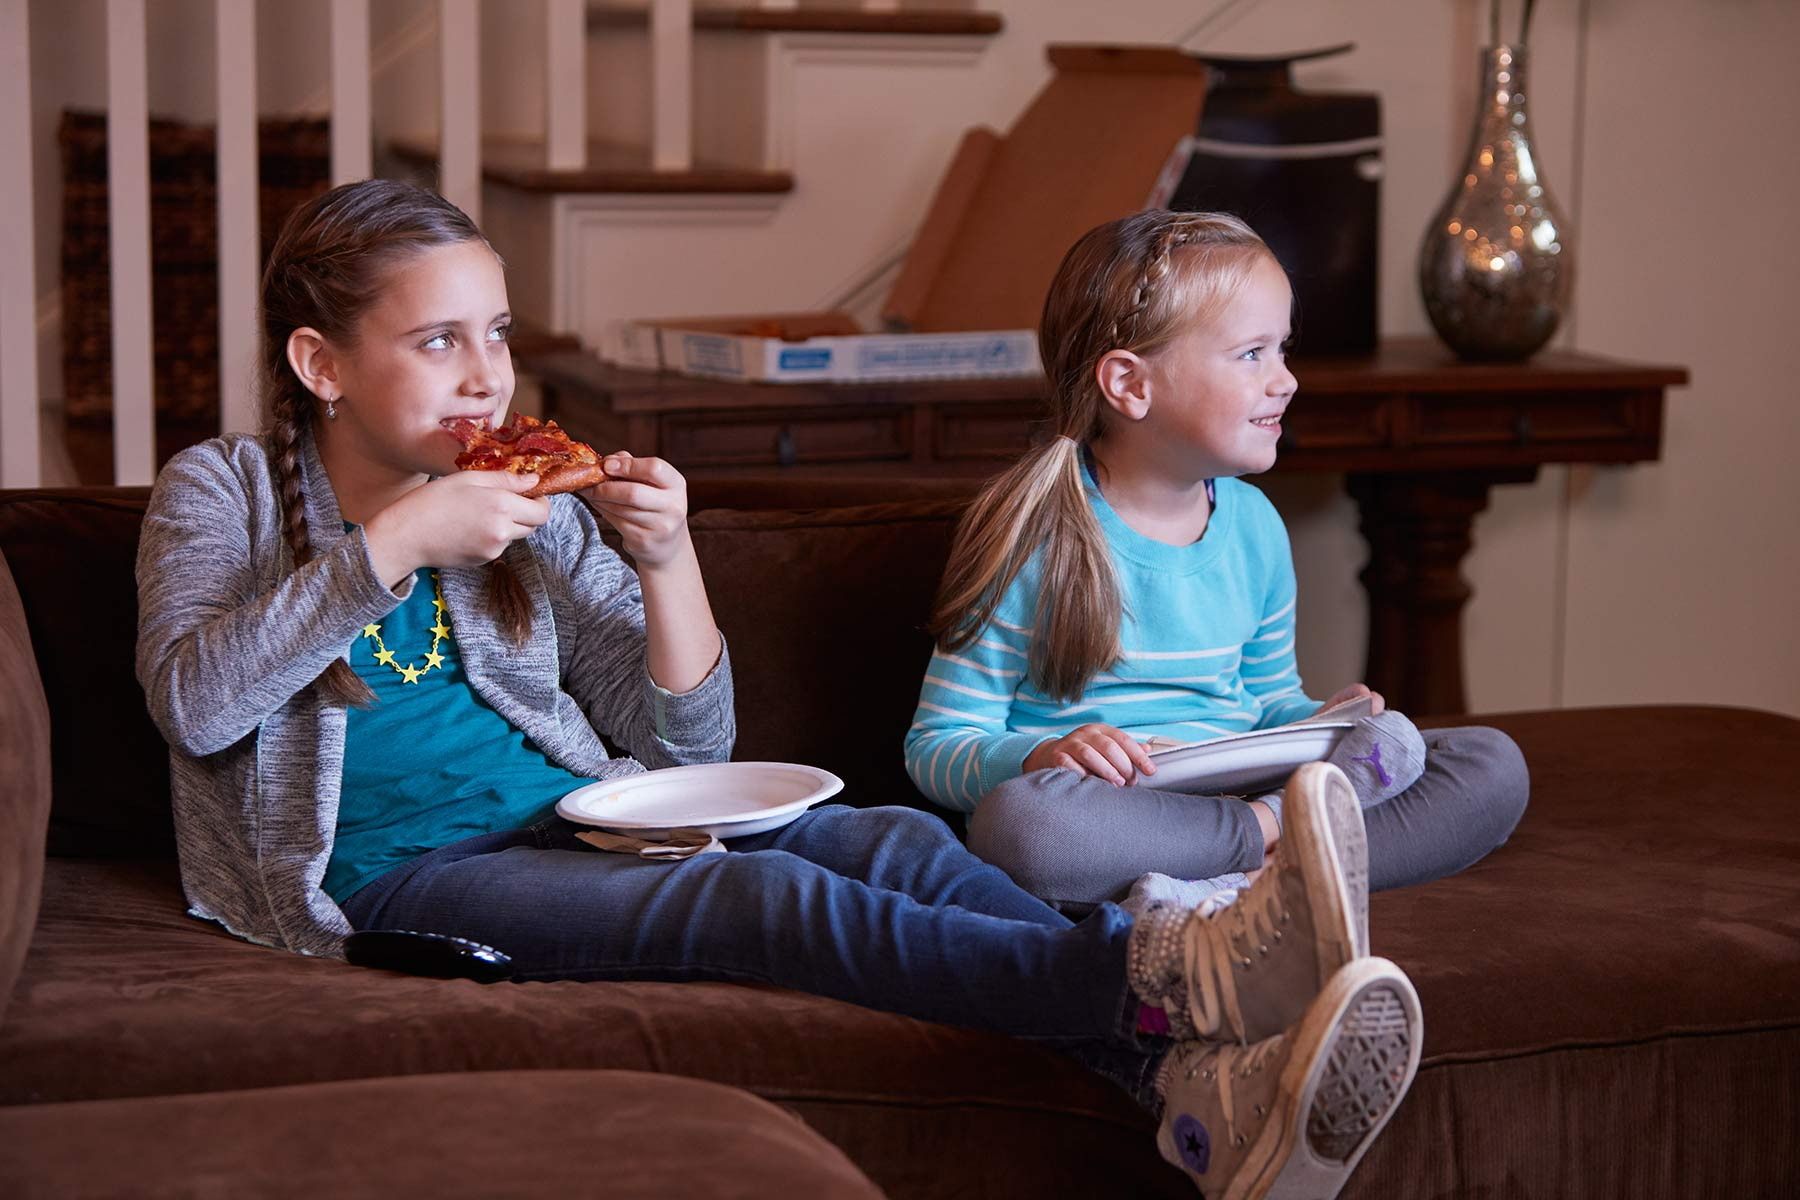 Girls watching TV eating pizza on couch